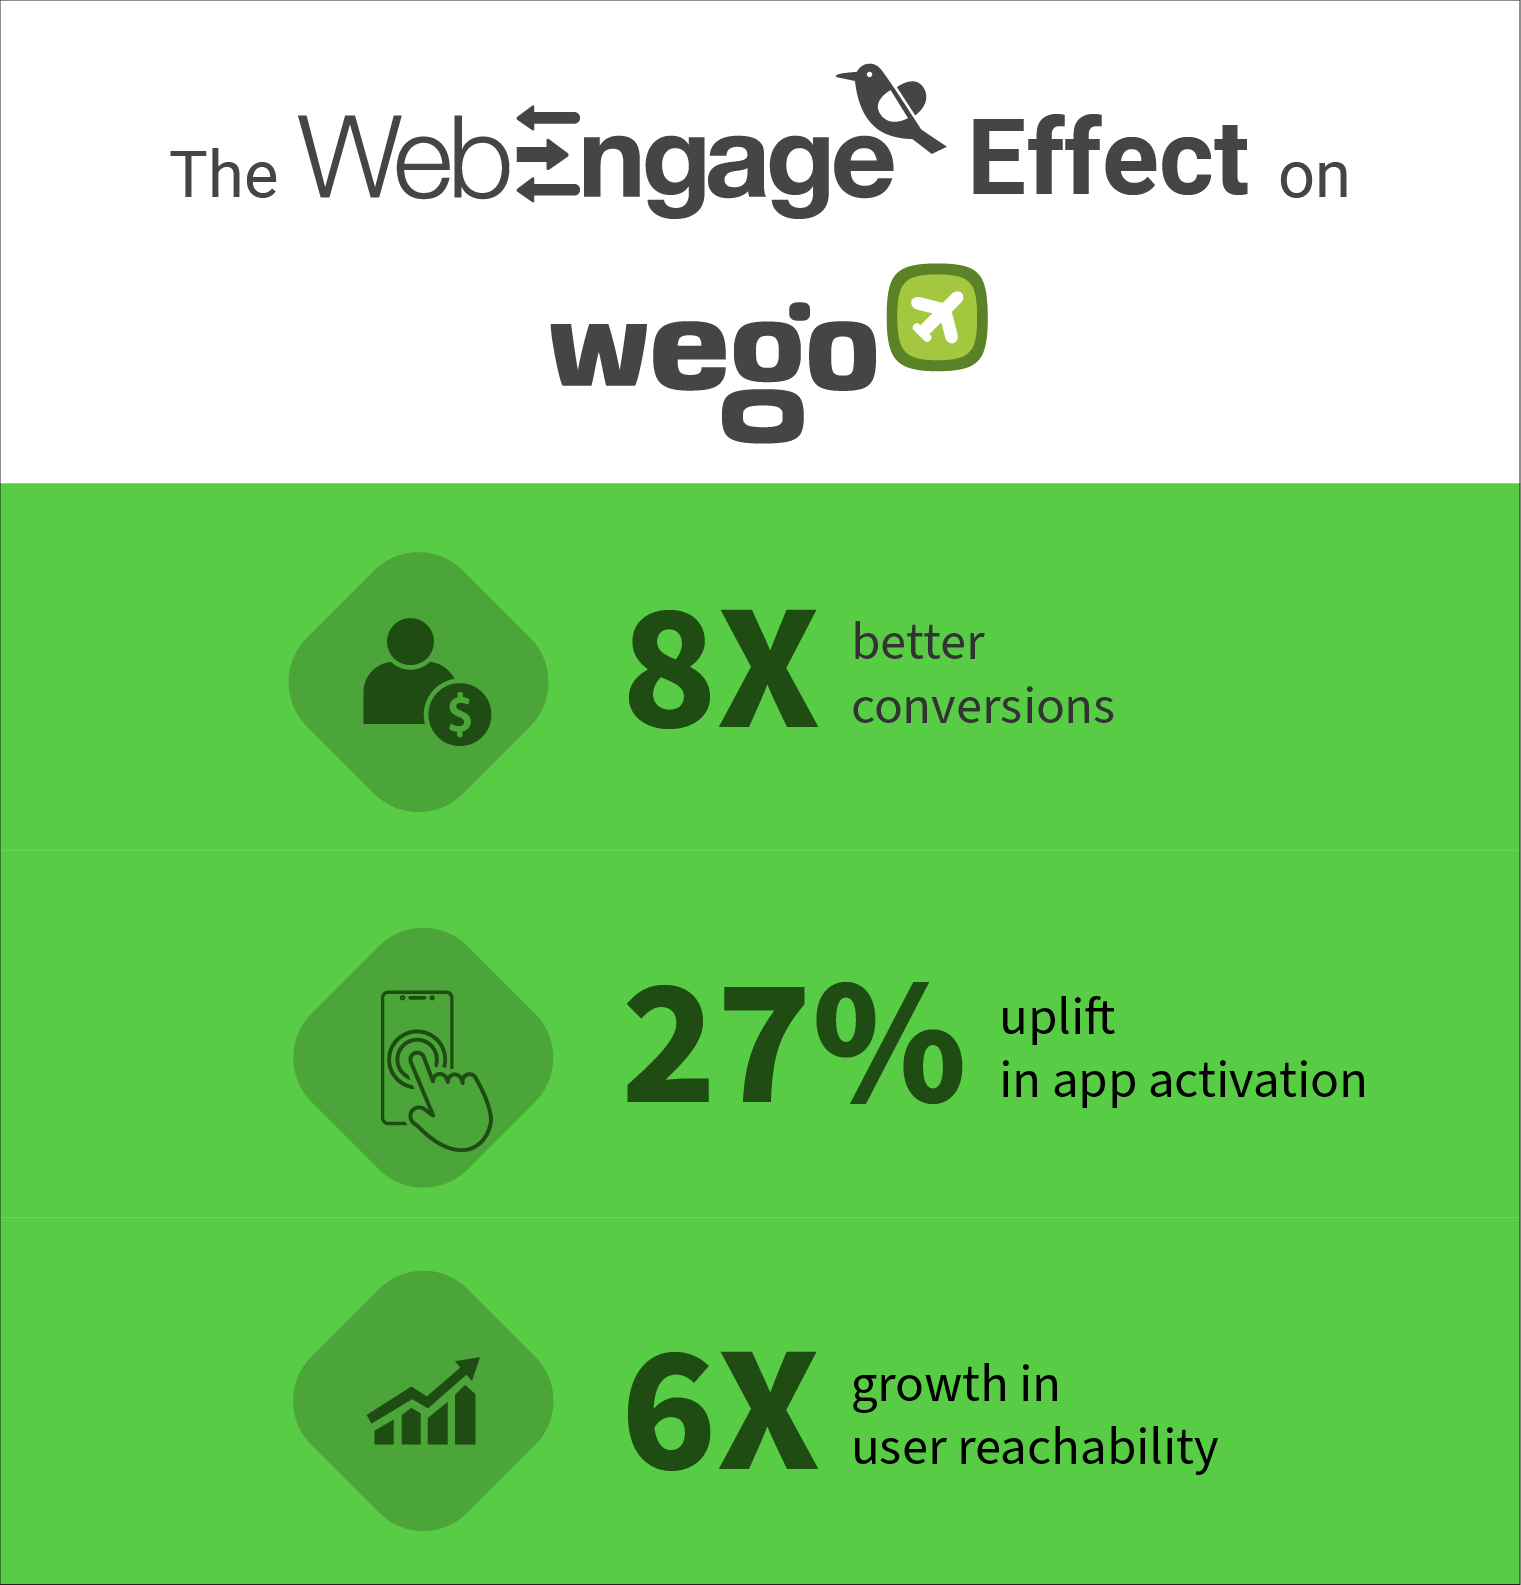 Wego boosts its conversions by 8X | Case Study